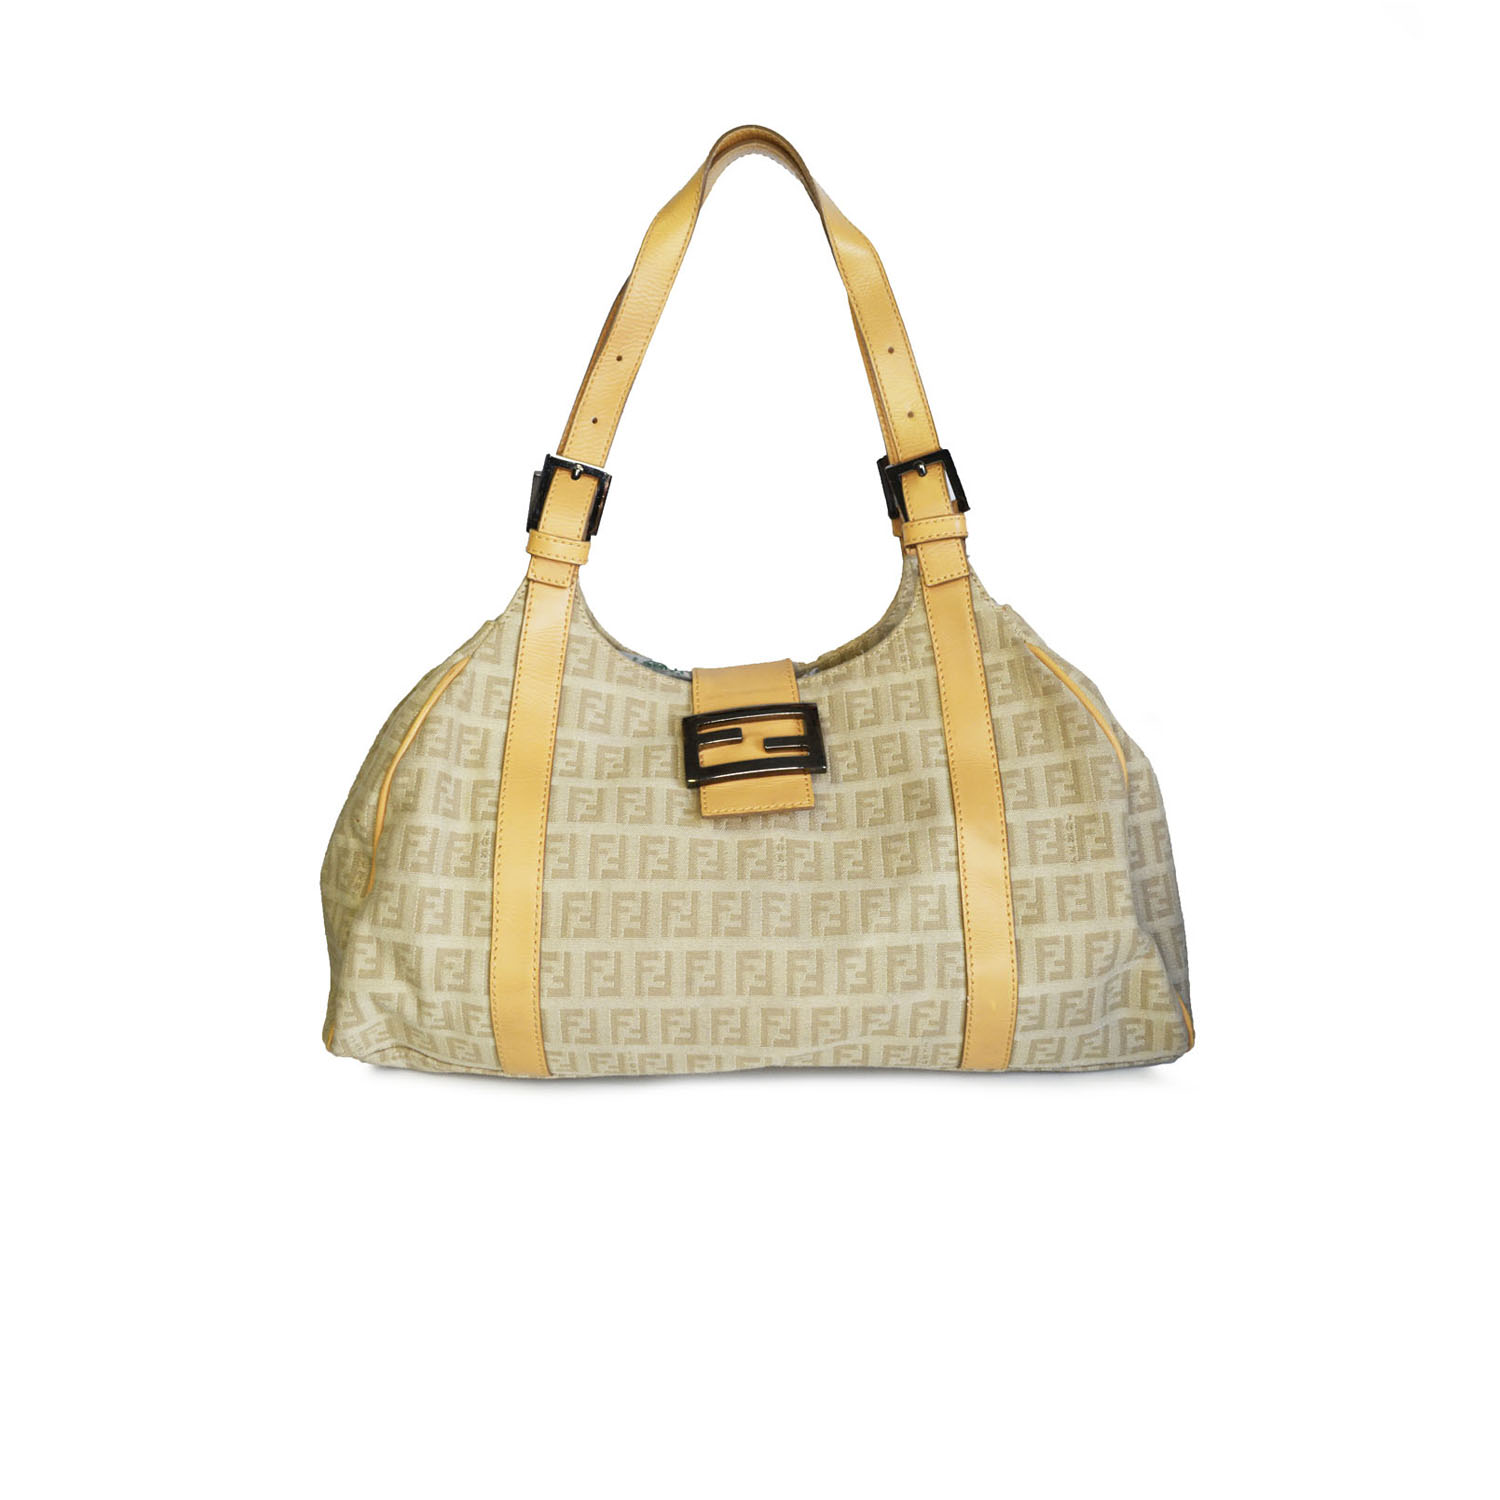 Vintage Gucci Monogram Shoulder Bag in Beige | NITRYL